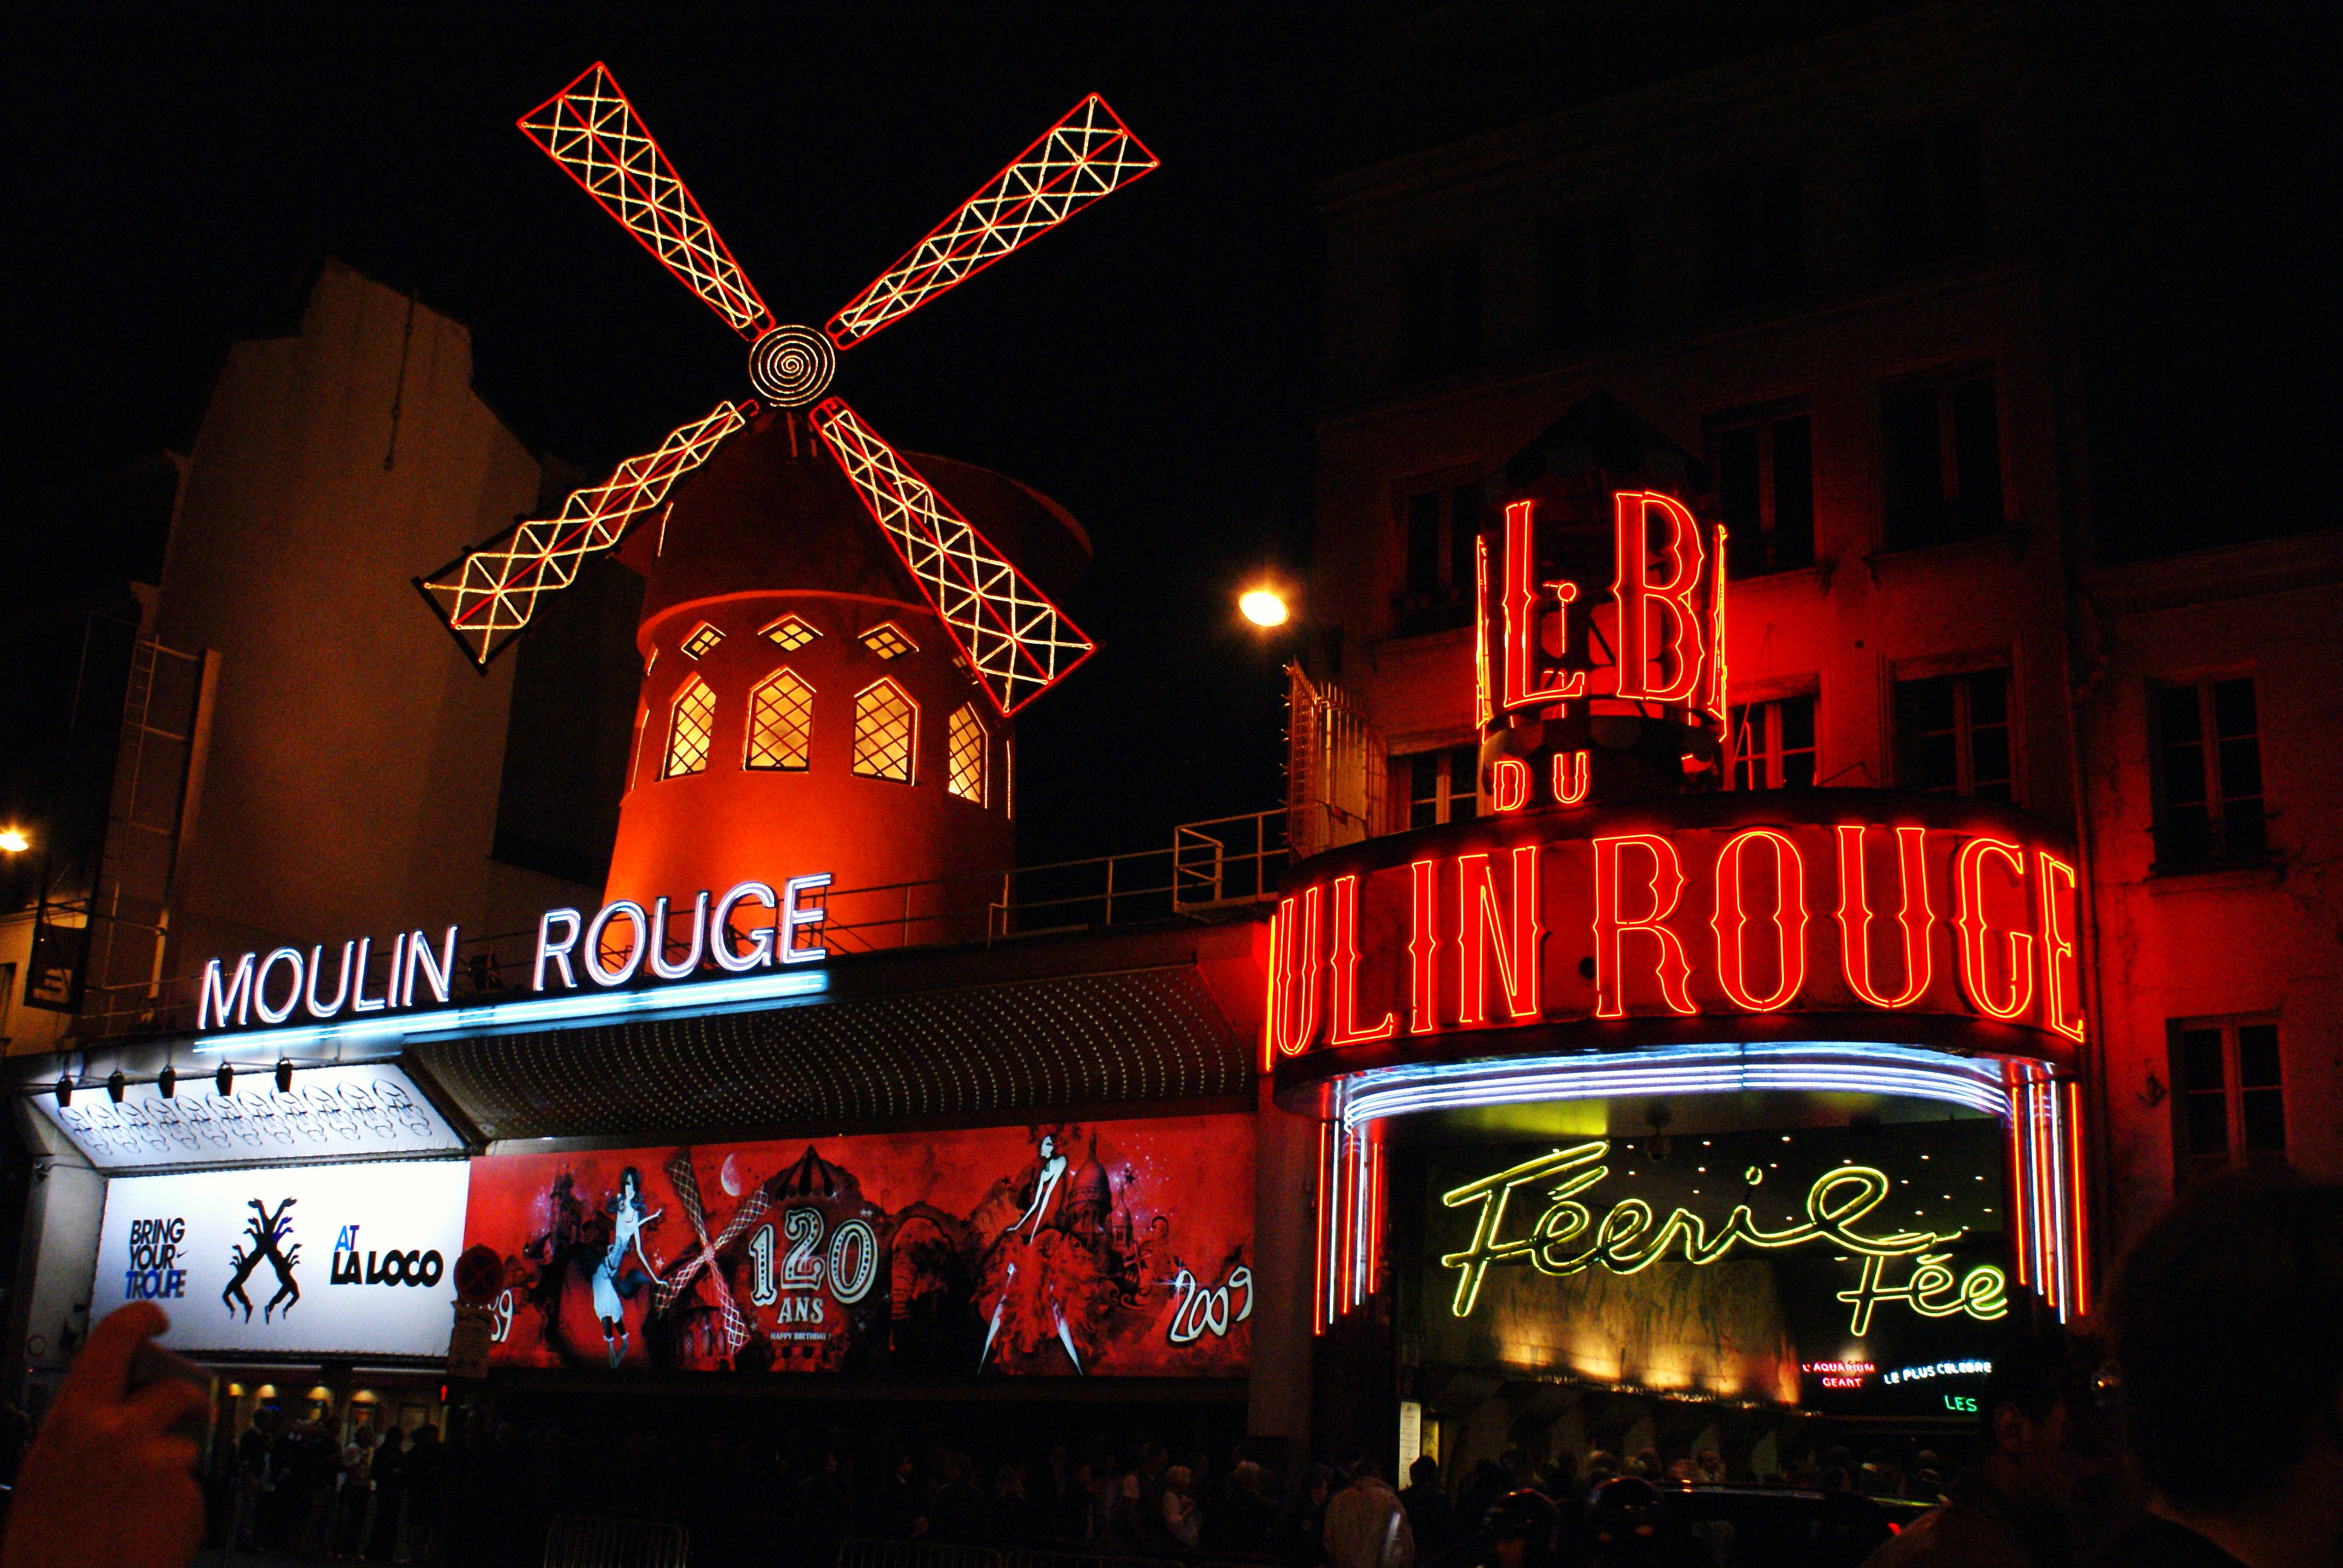 Moulin Rouge! Backgrounds on Wallpapers Vista